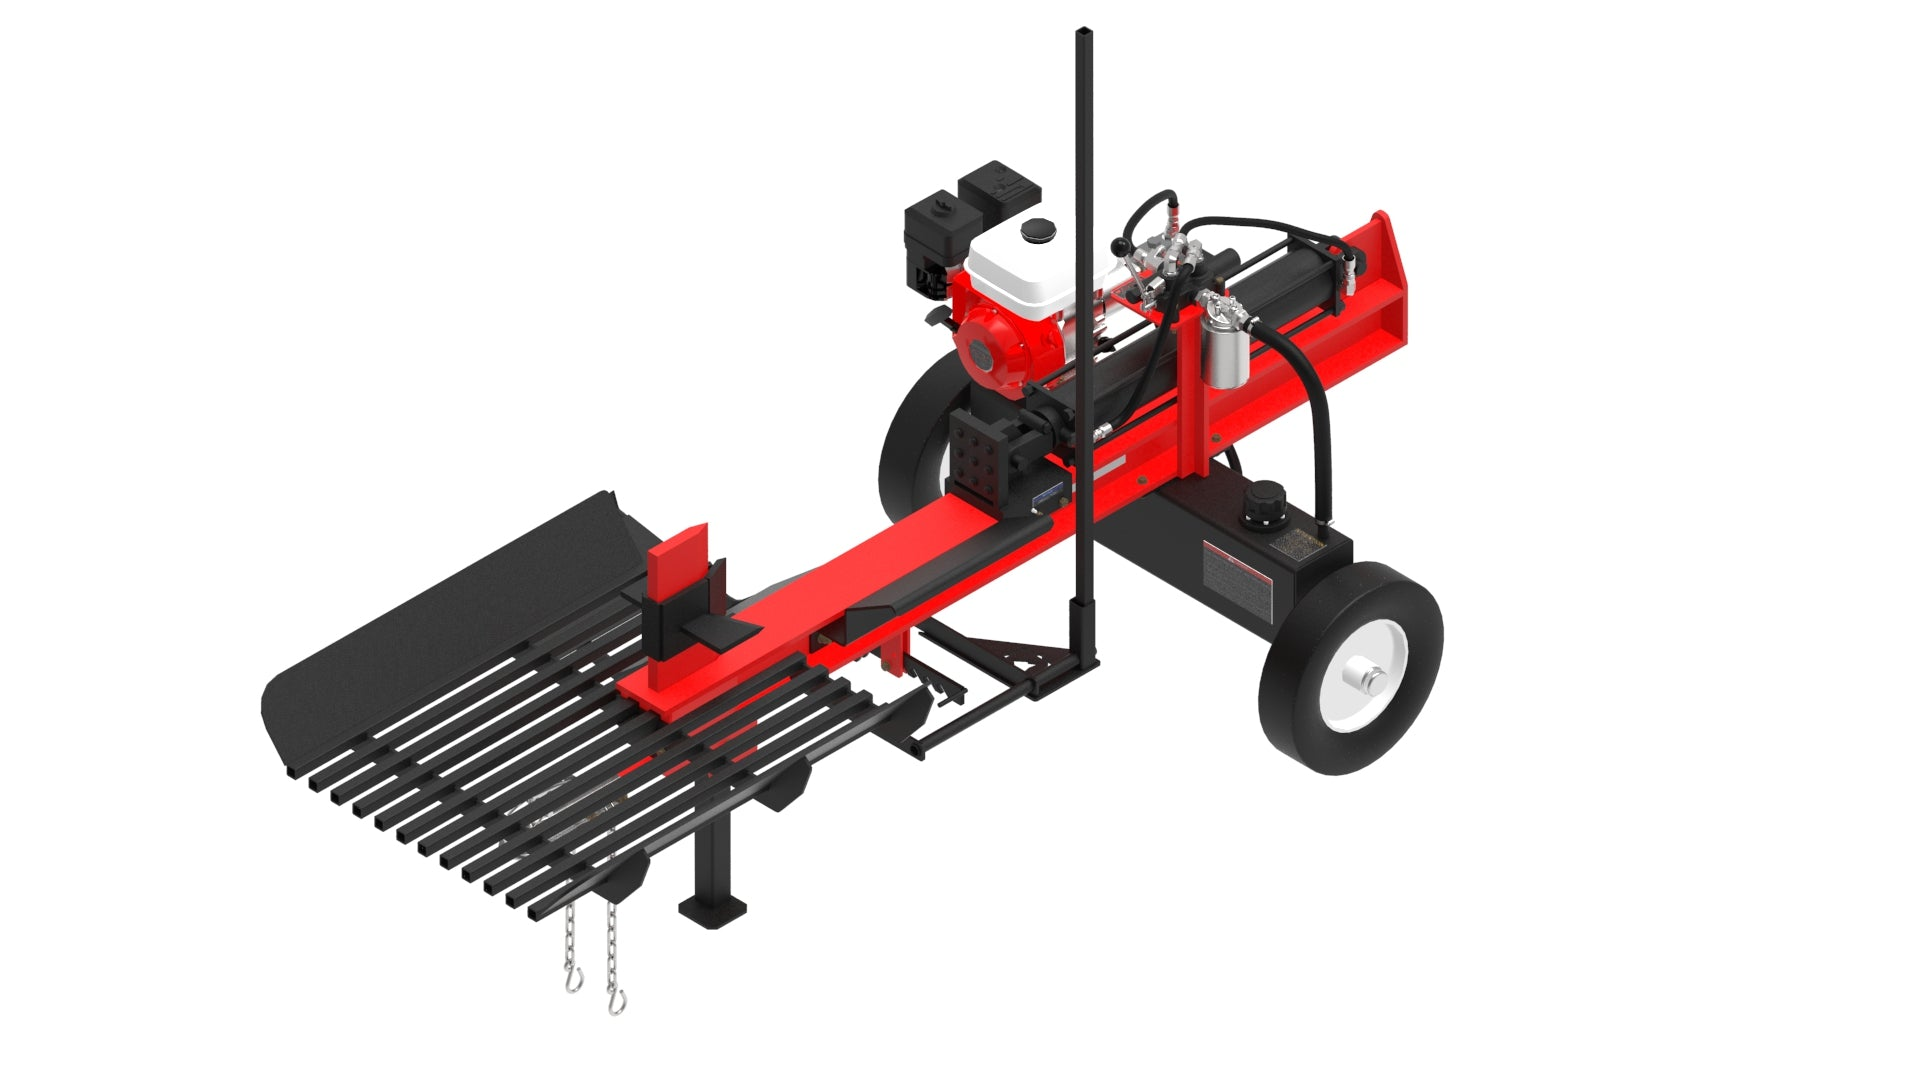 TW-1 4-Way Table Grate Log Lift